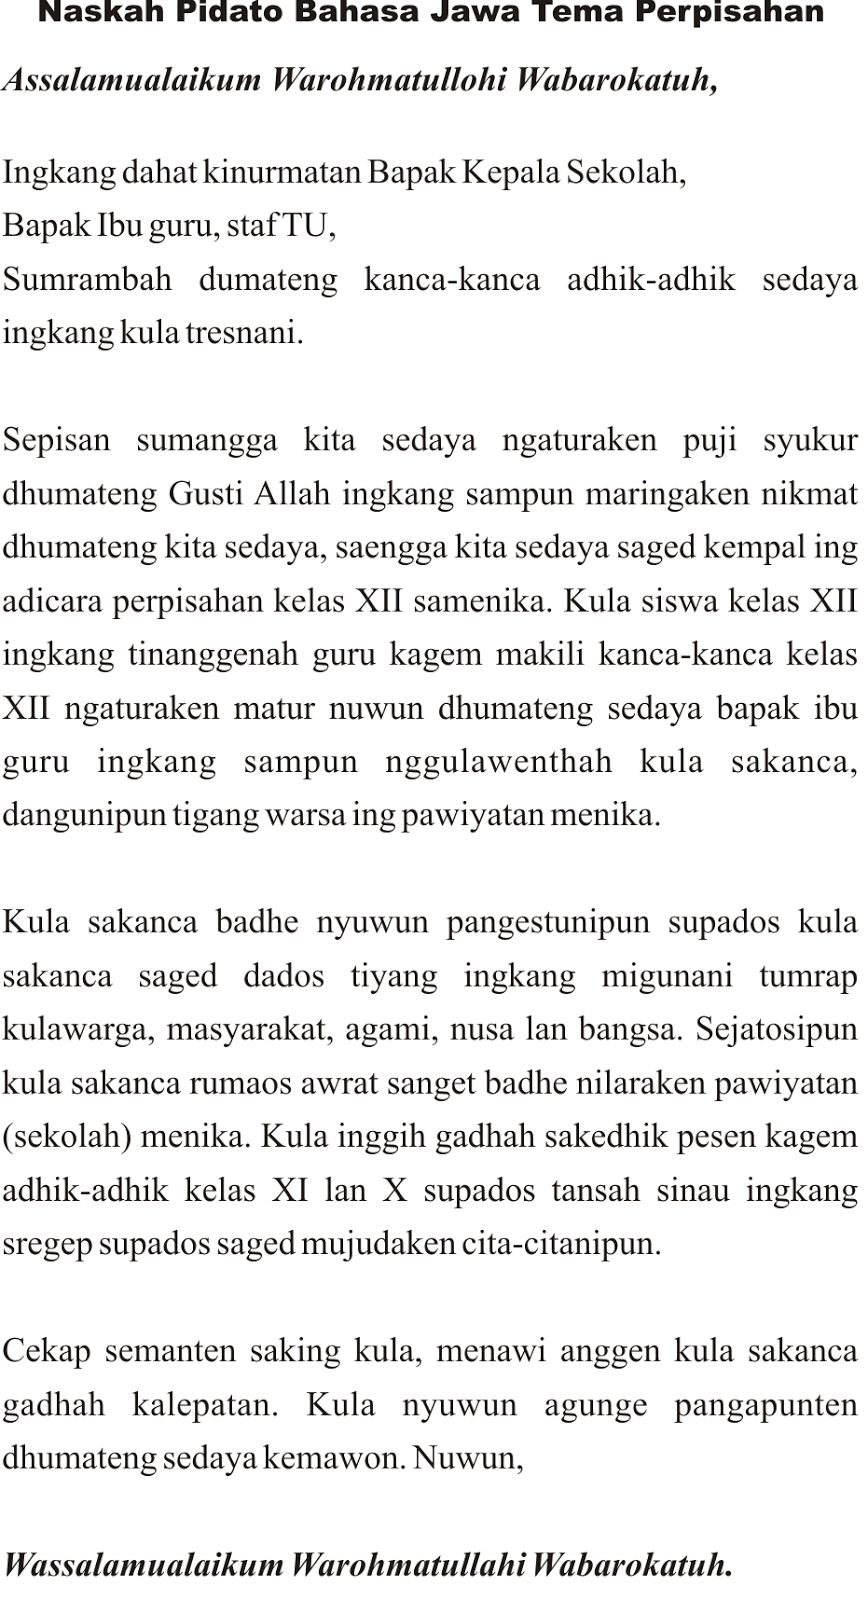 Contoh text argumentative